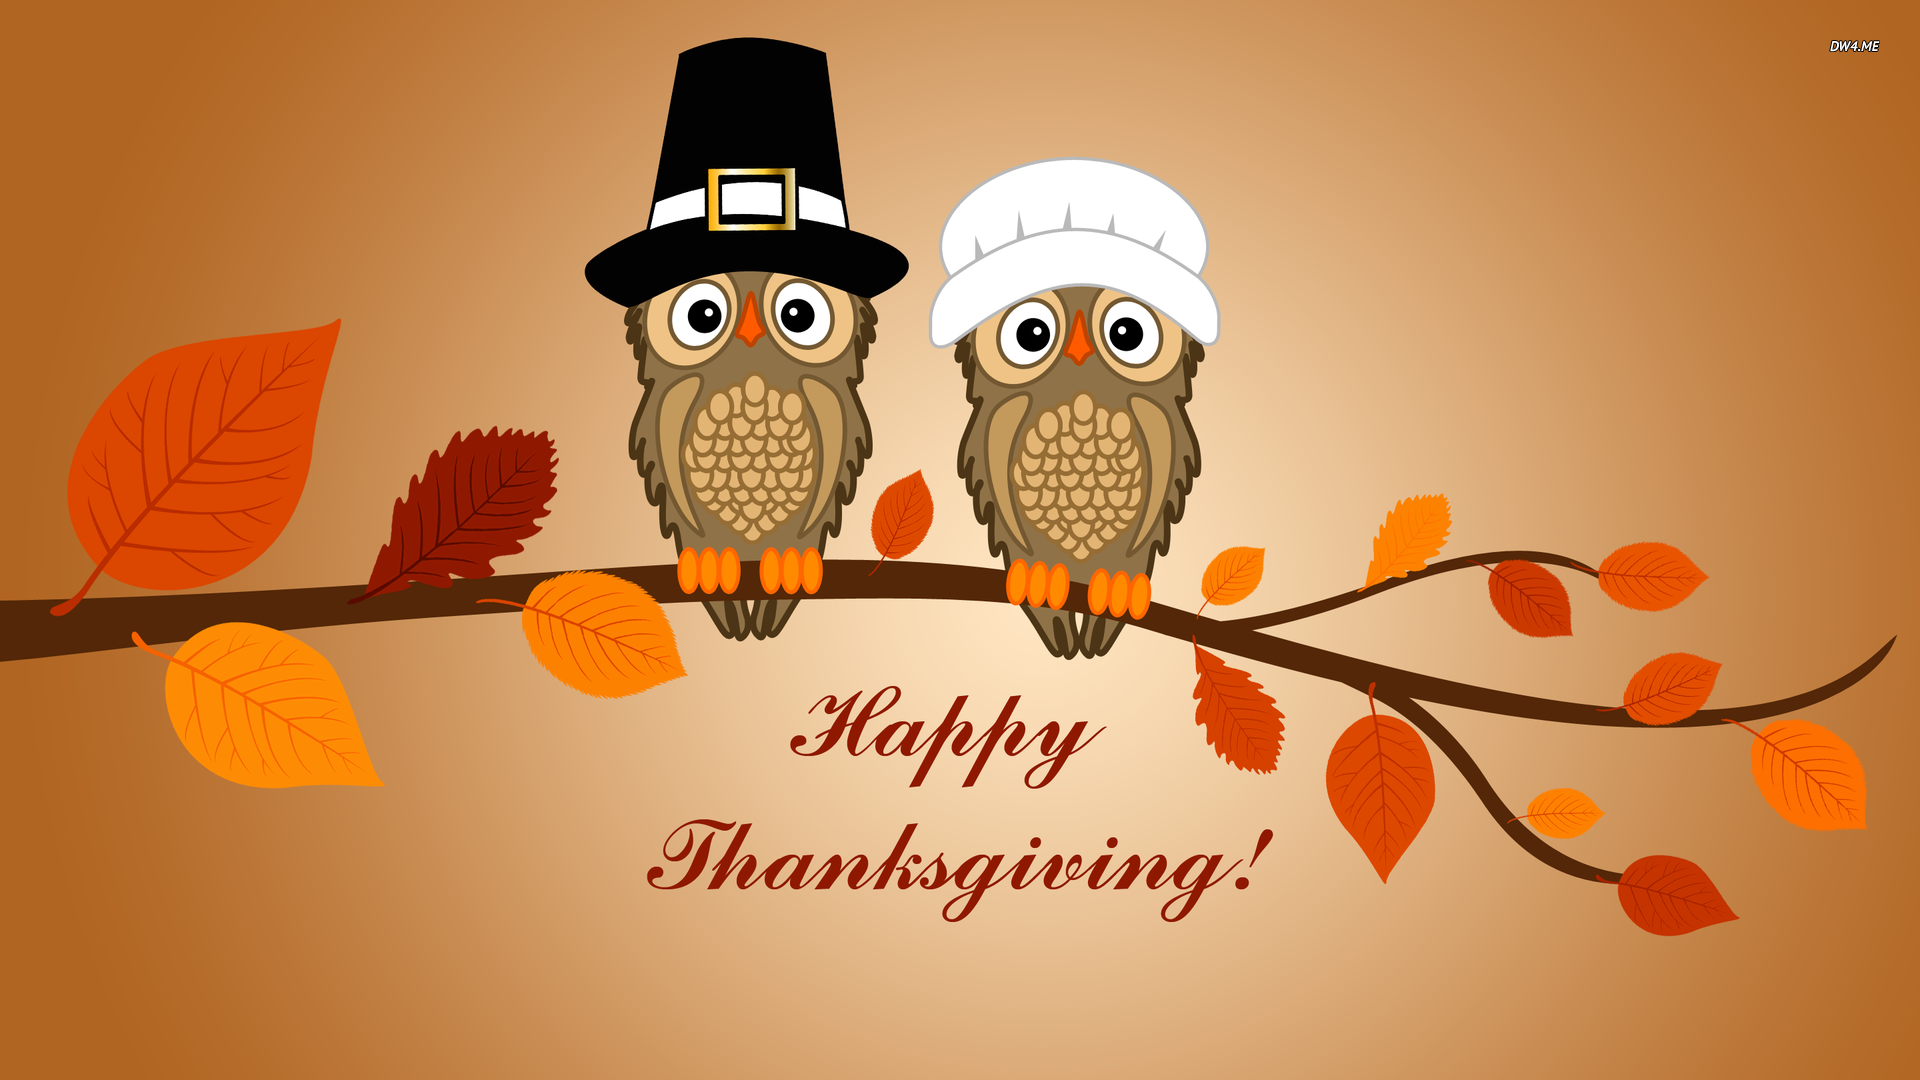 Happy Thanksgiving Day Images, Wallpapers & Pictures